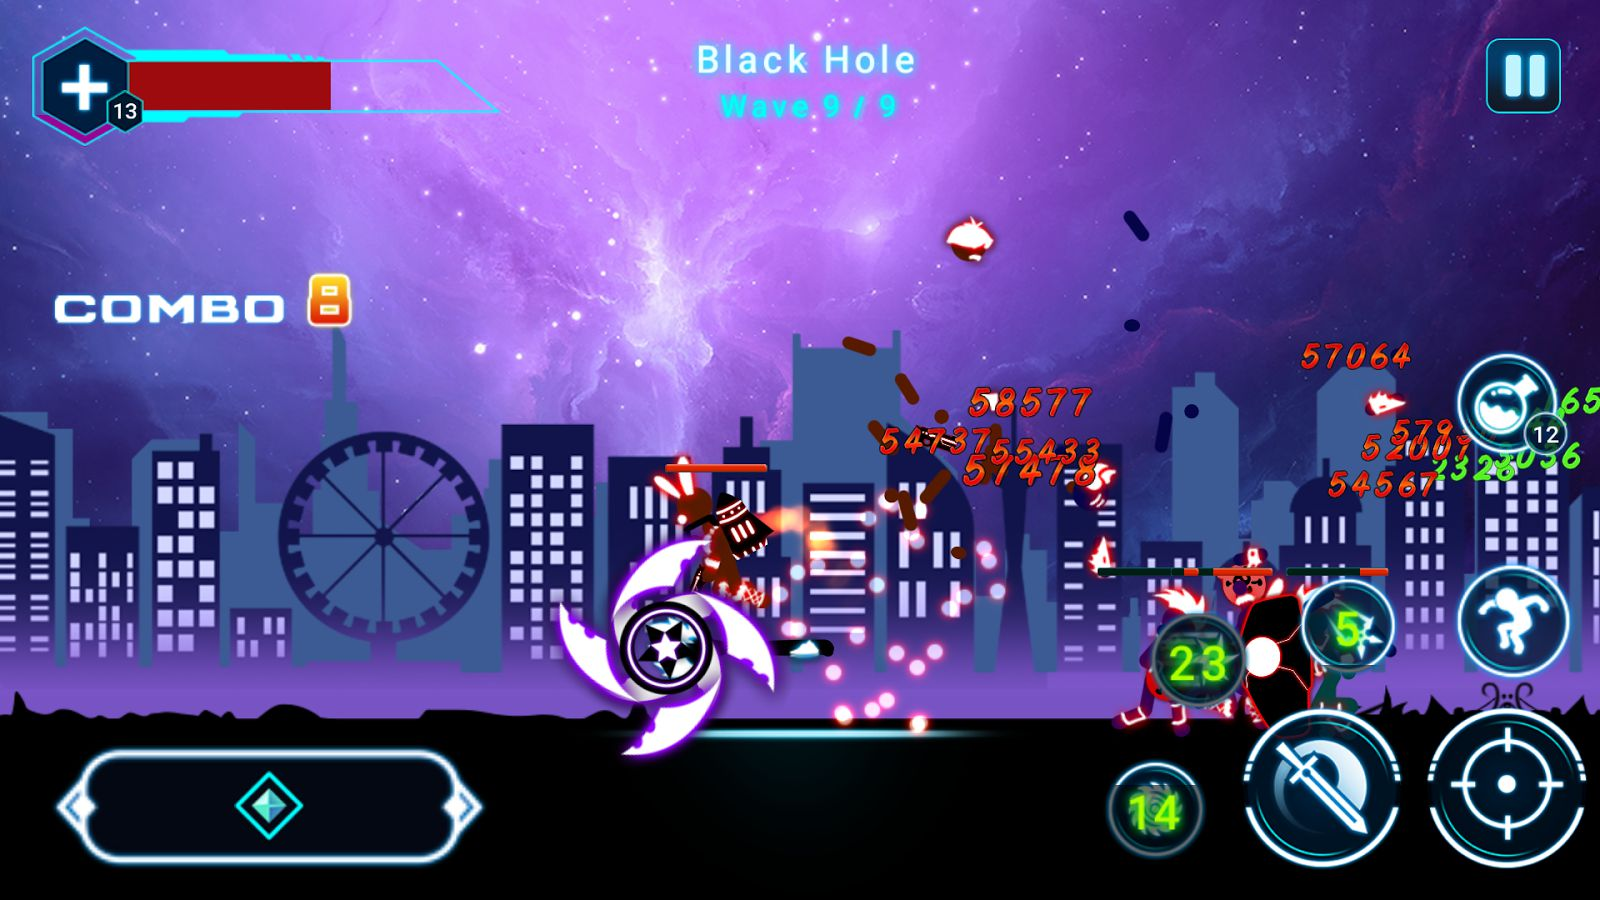 Hack game Stickman Ghost 2: Star Wars cho Android không cần root (3)